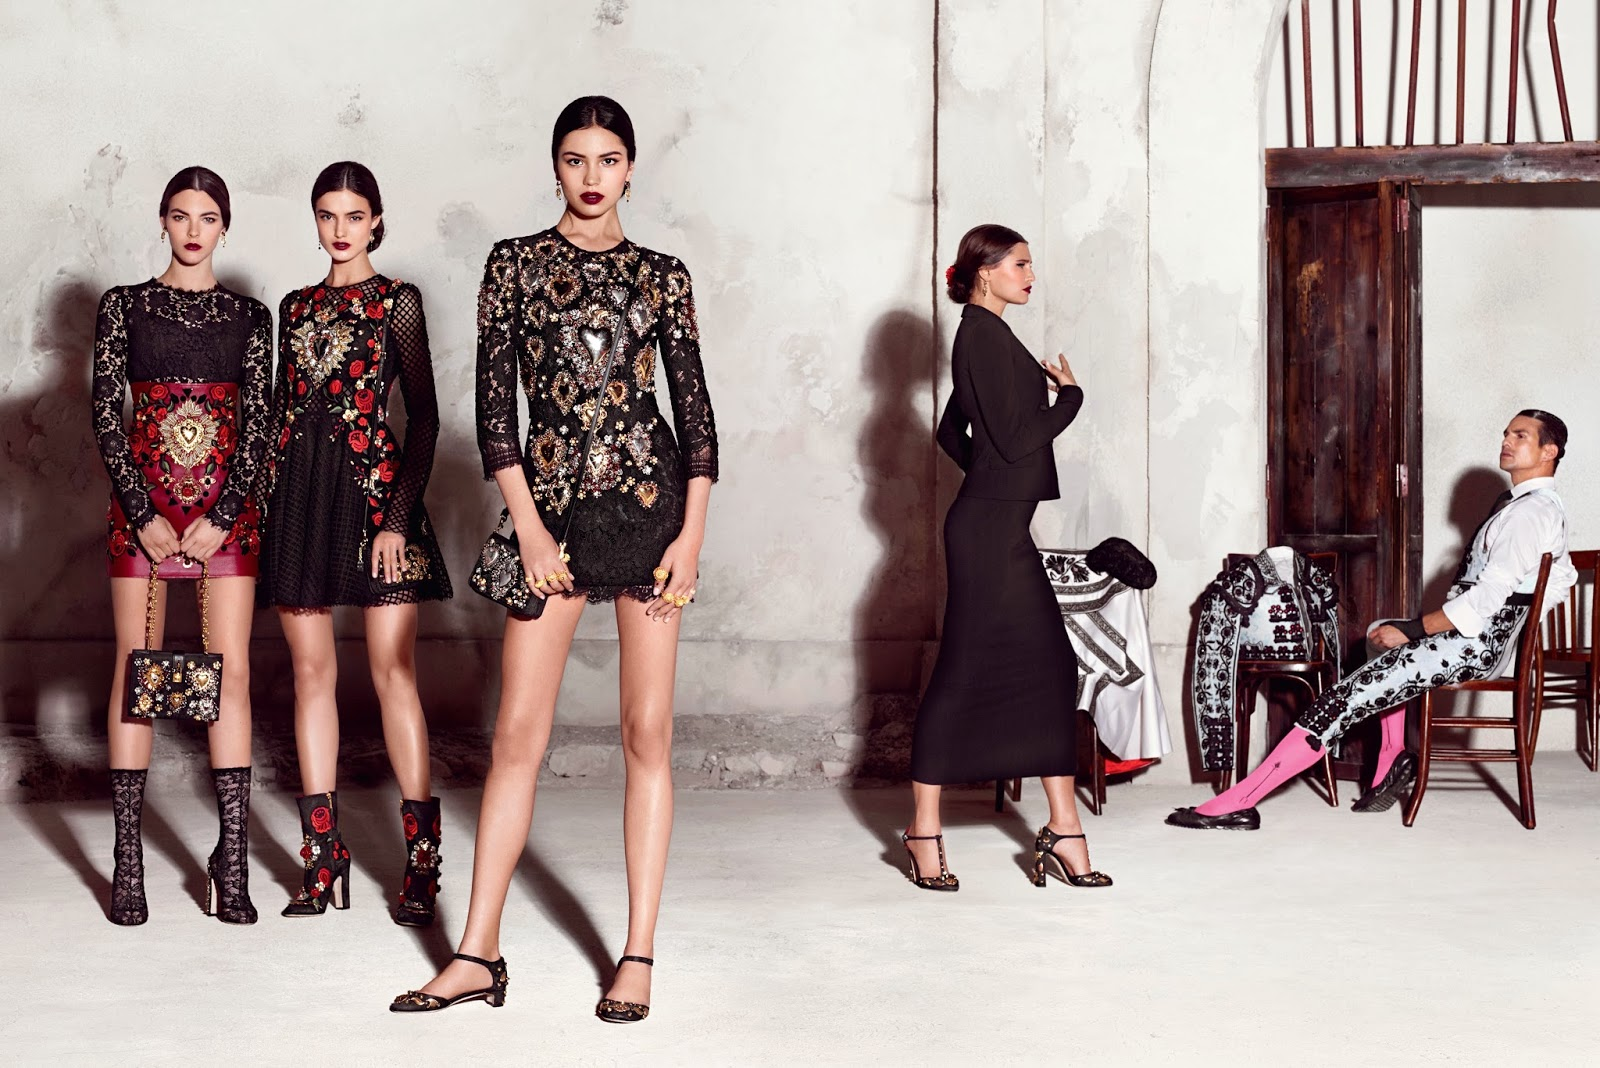 http://www.syriouslyinfashion.com/2015/01/dolce-gabbana-ss-2015-ad-campaign.html